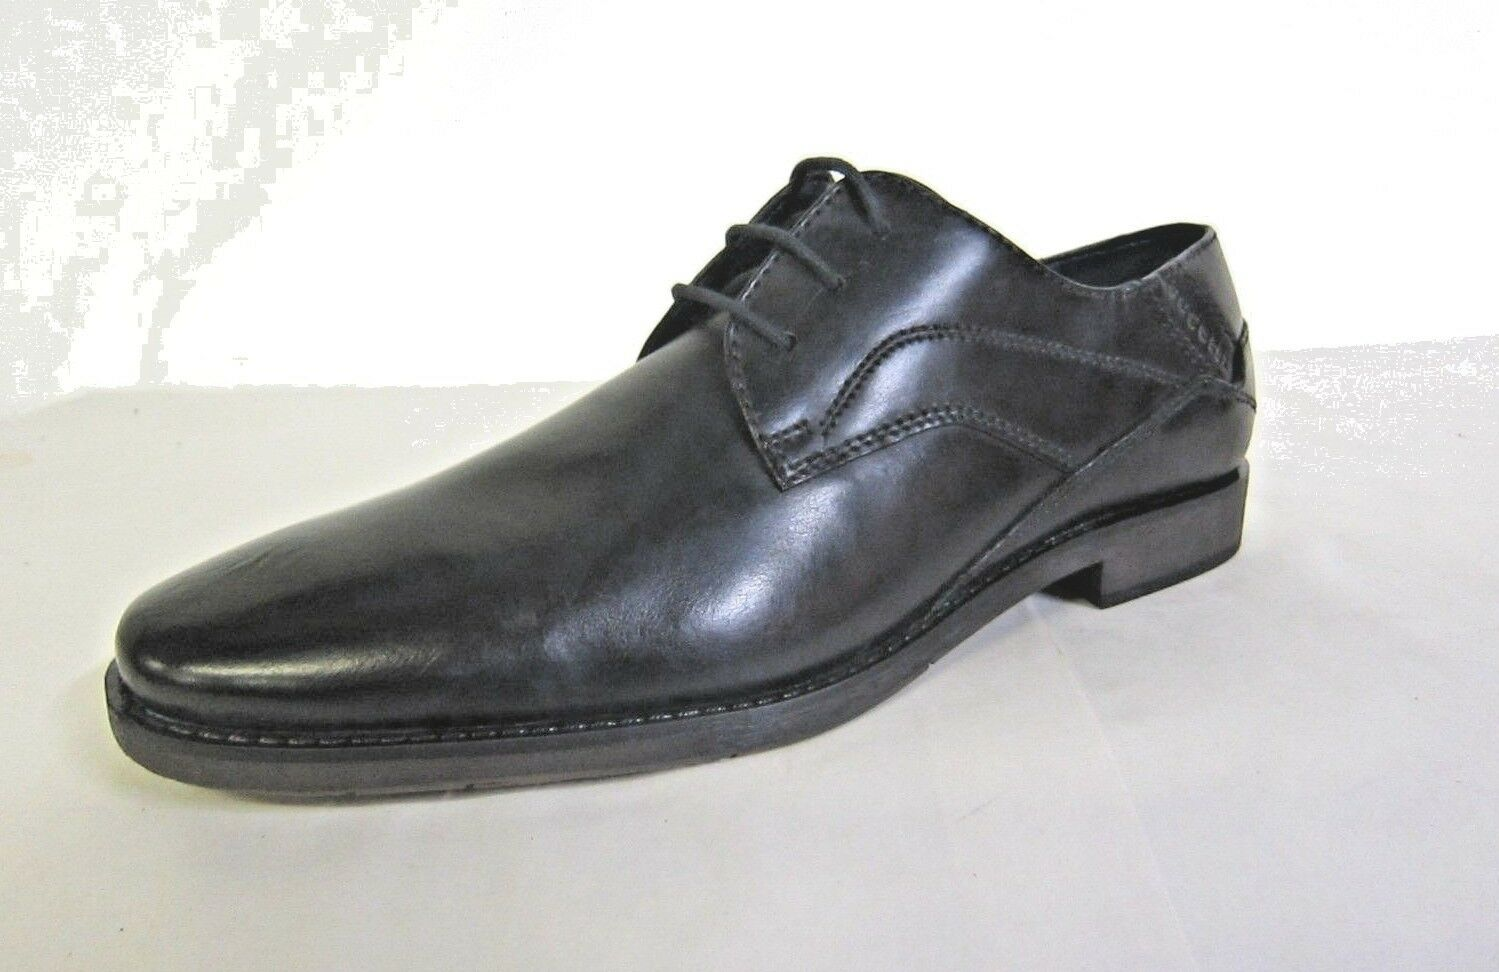 313-230031000- Mens Bugatti Formal Leather Lace Up shoes.